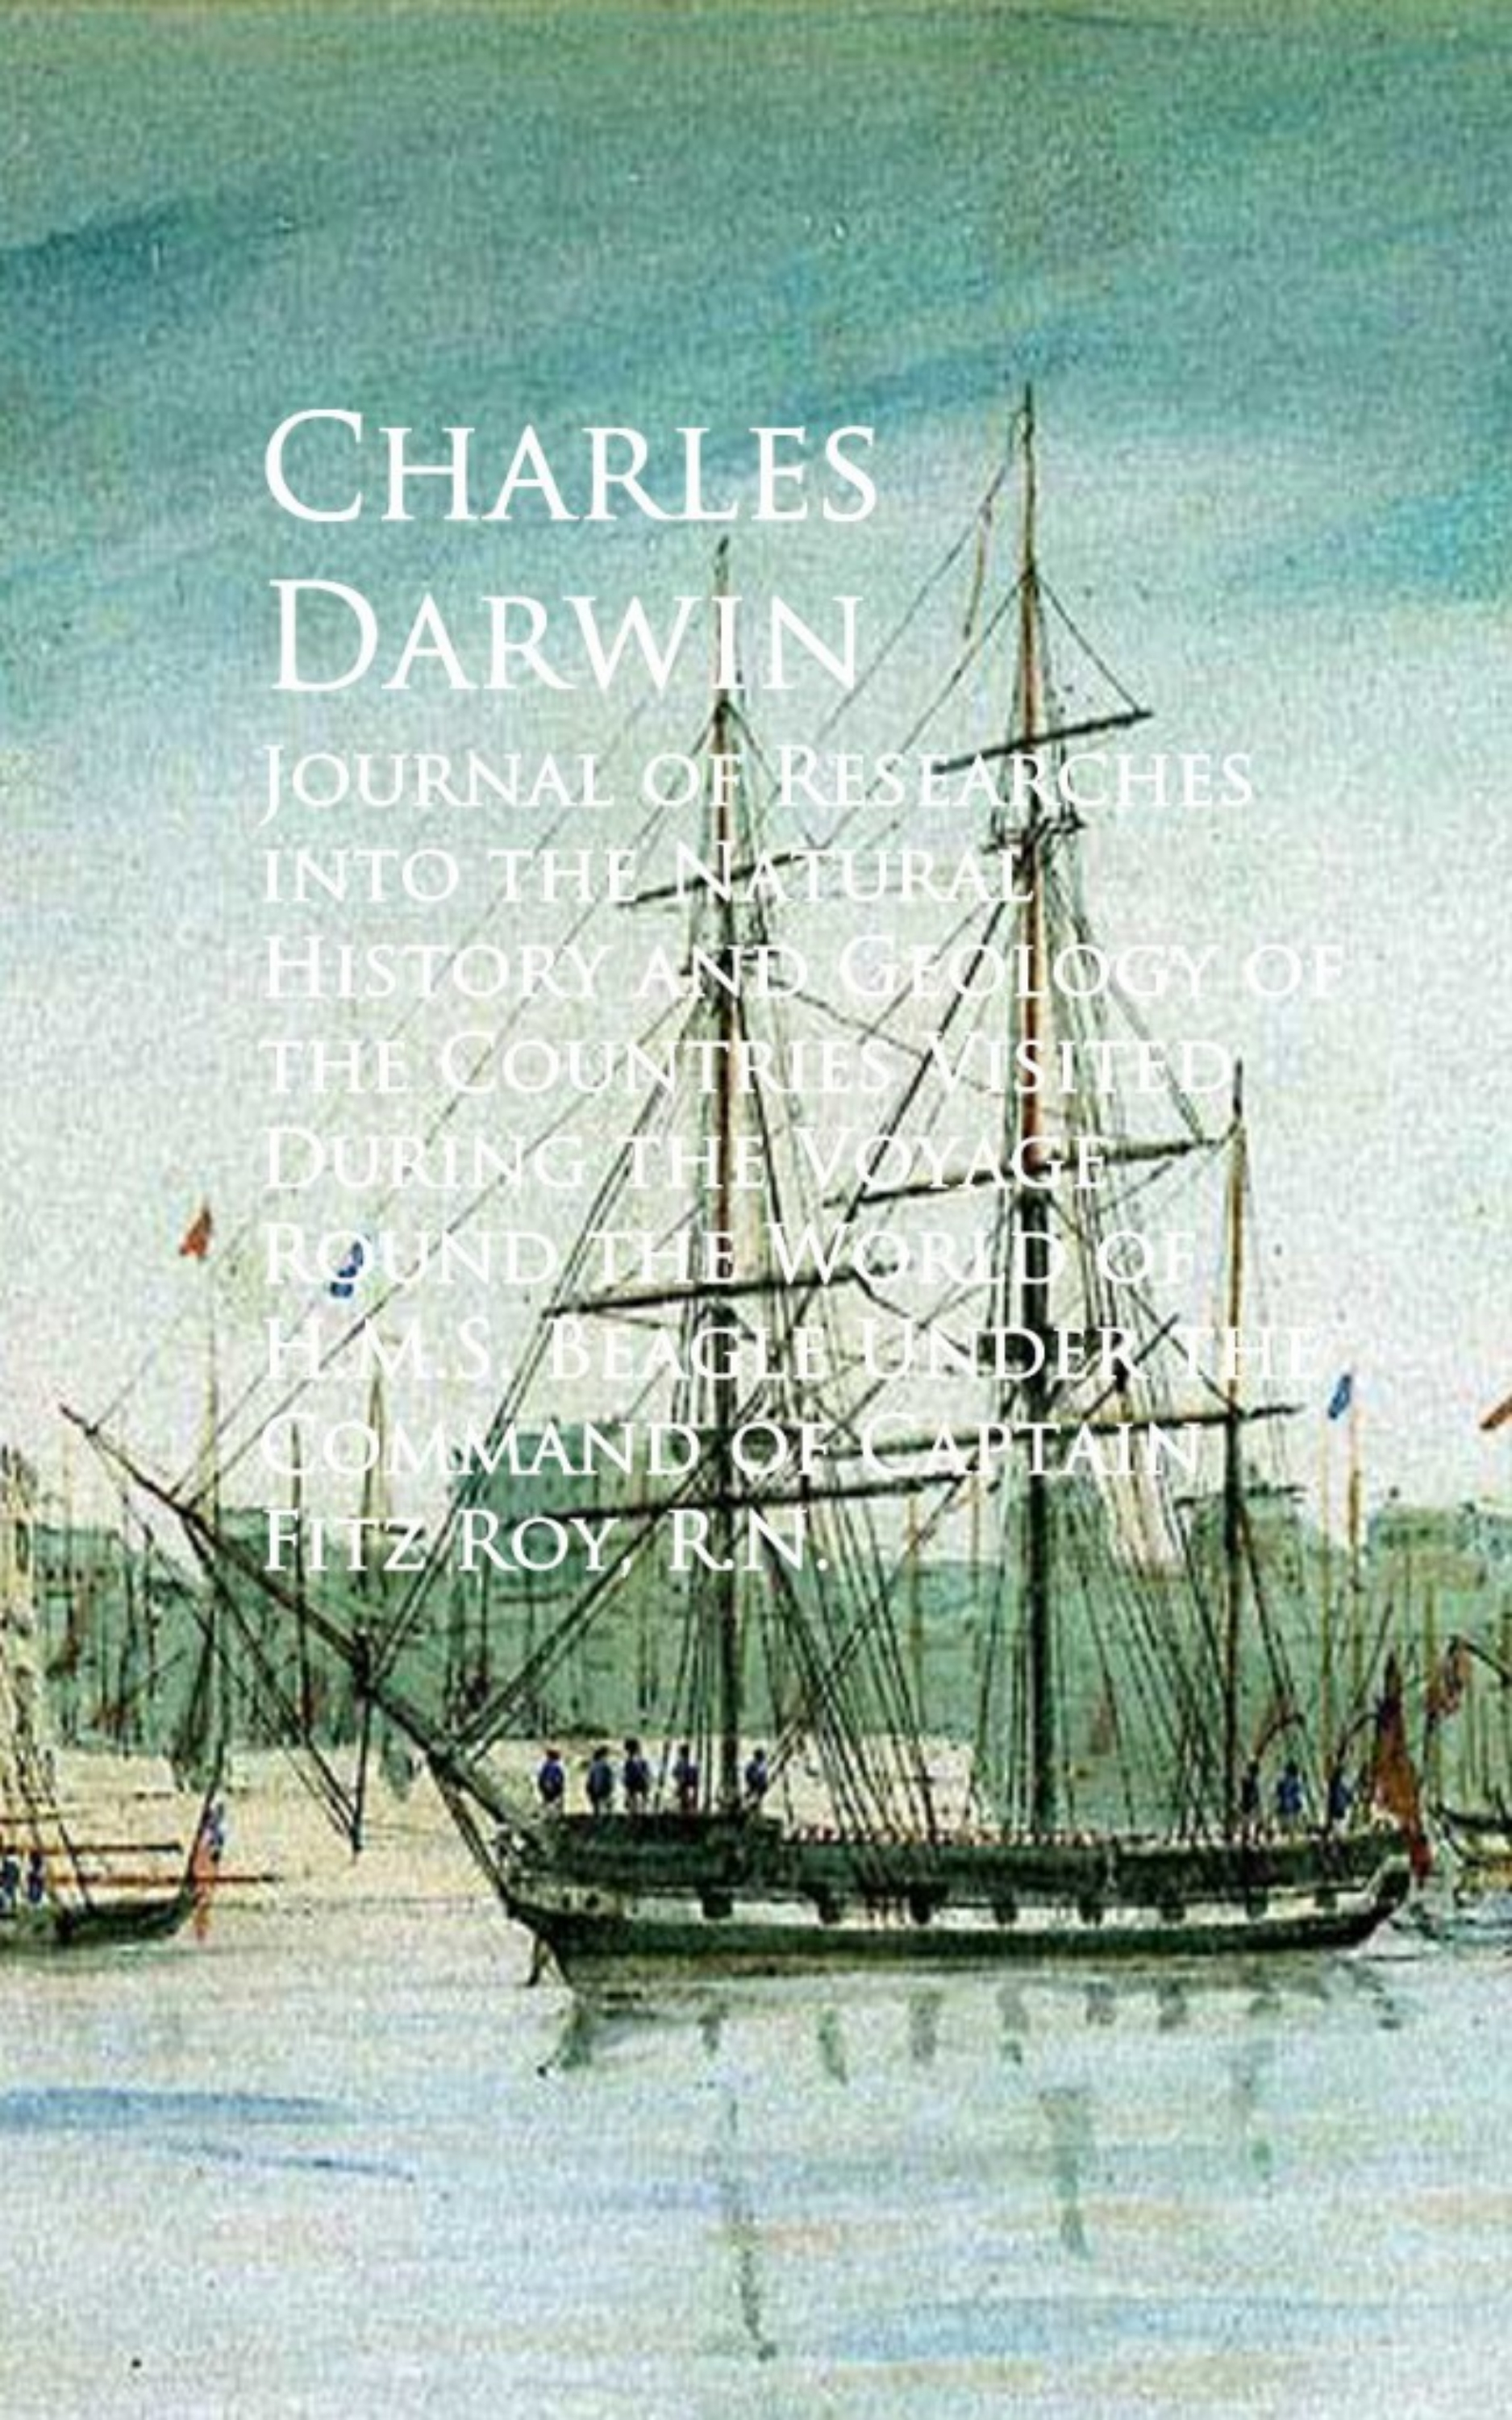 Charles Darwin Journal of Researches into the Natural History and Round the World of H.M.S. Beagle walking the world s natural wonders